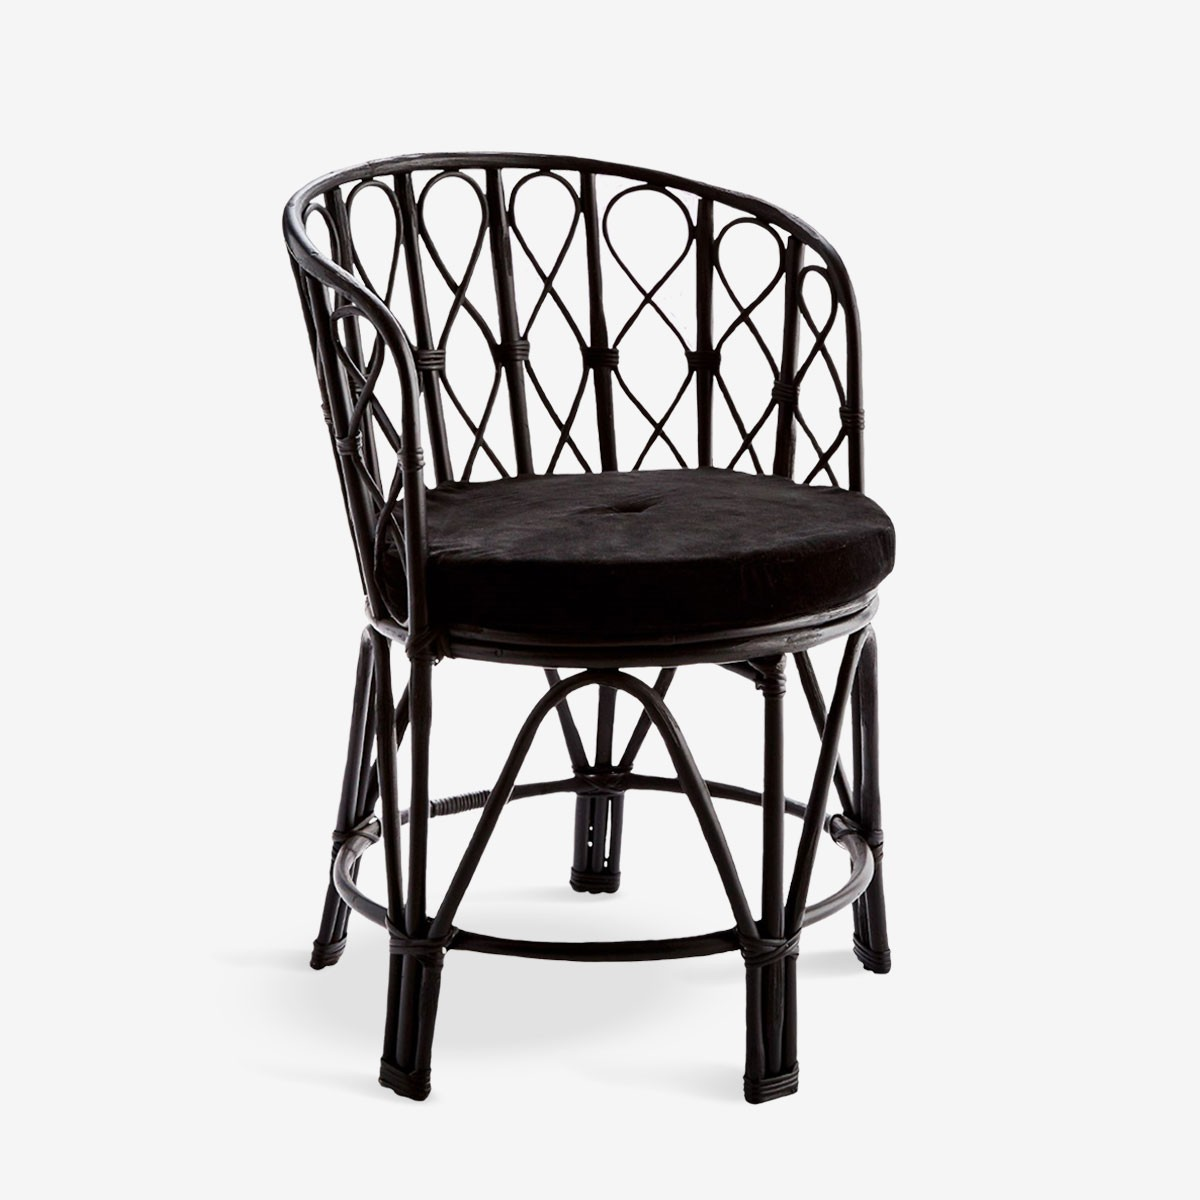 Boho Chair in Black Bamboo